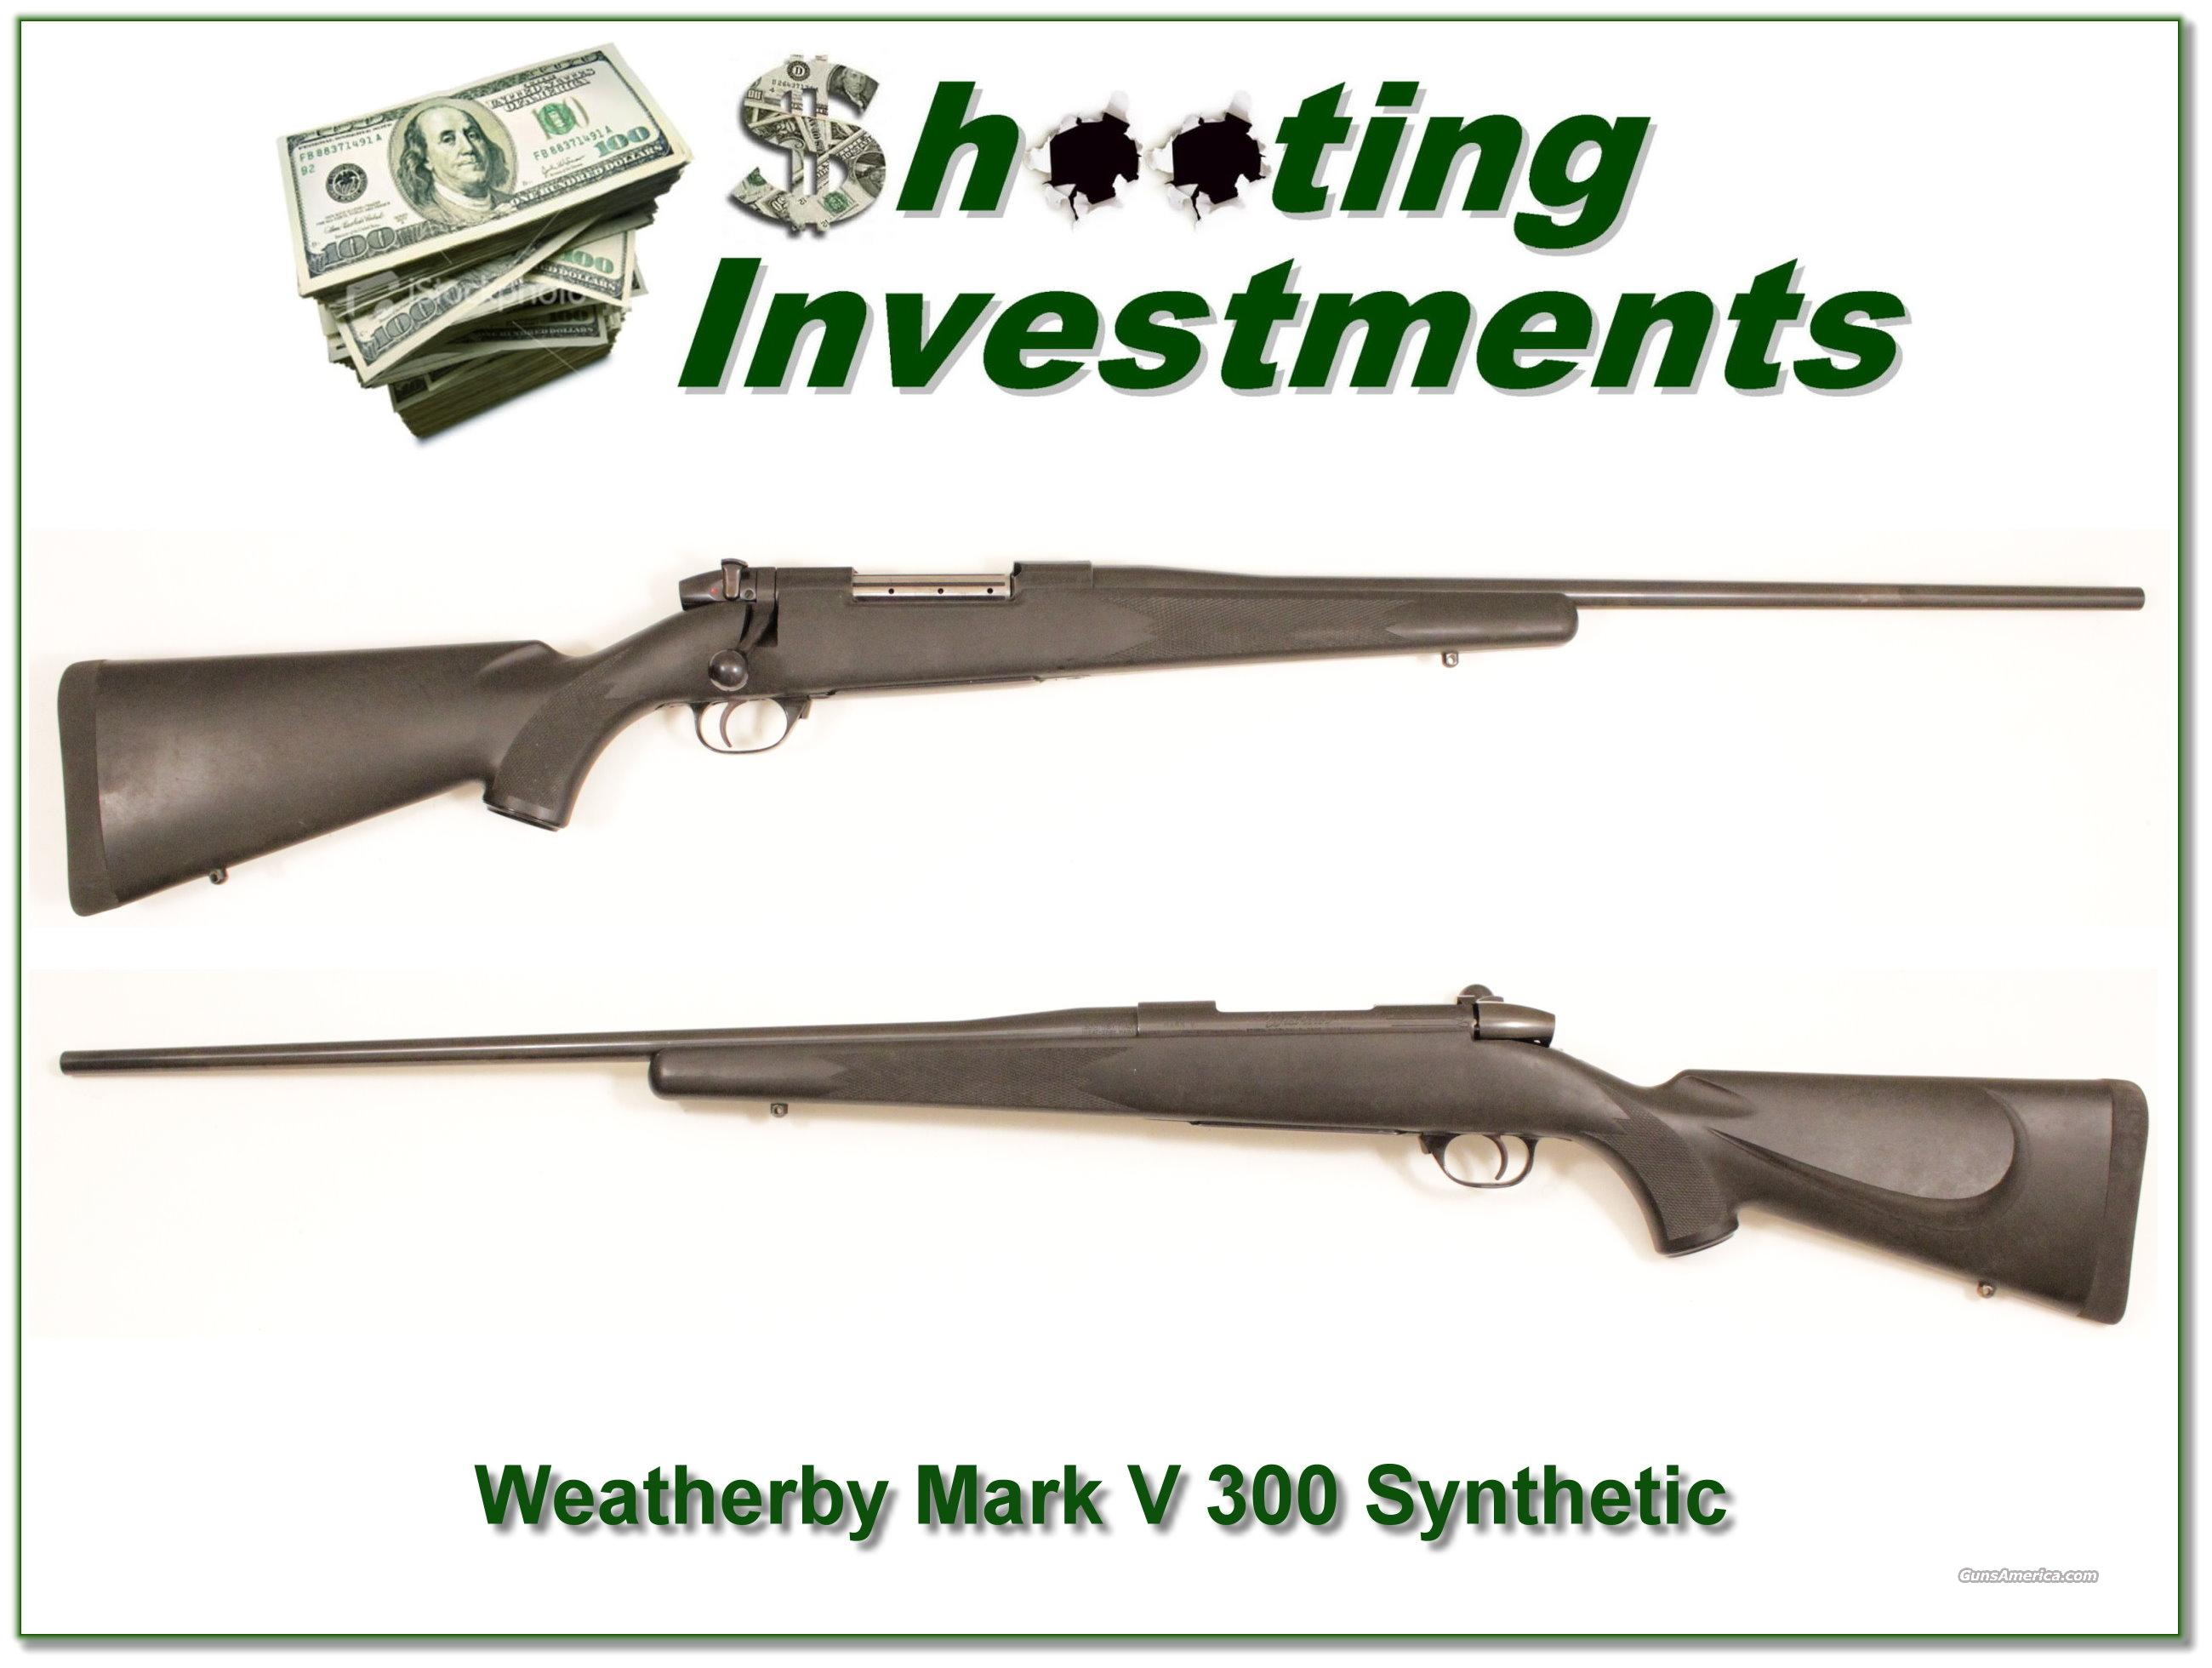 Weatherby Mark V 300 Synthetic  Guns > Rifles > Weatherby Rifles > Sporting